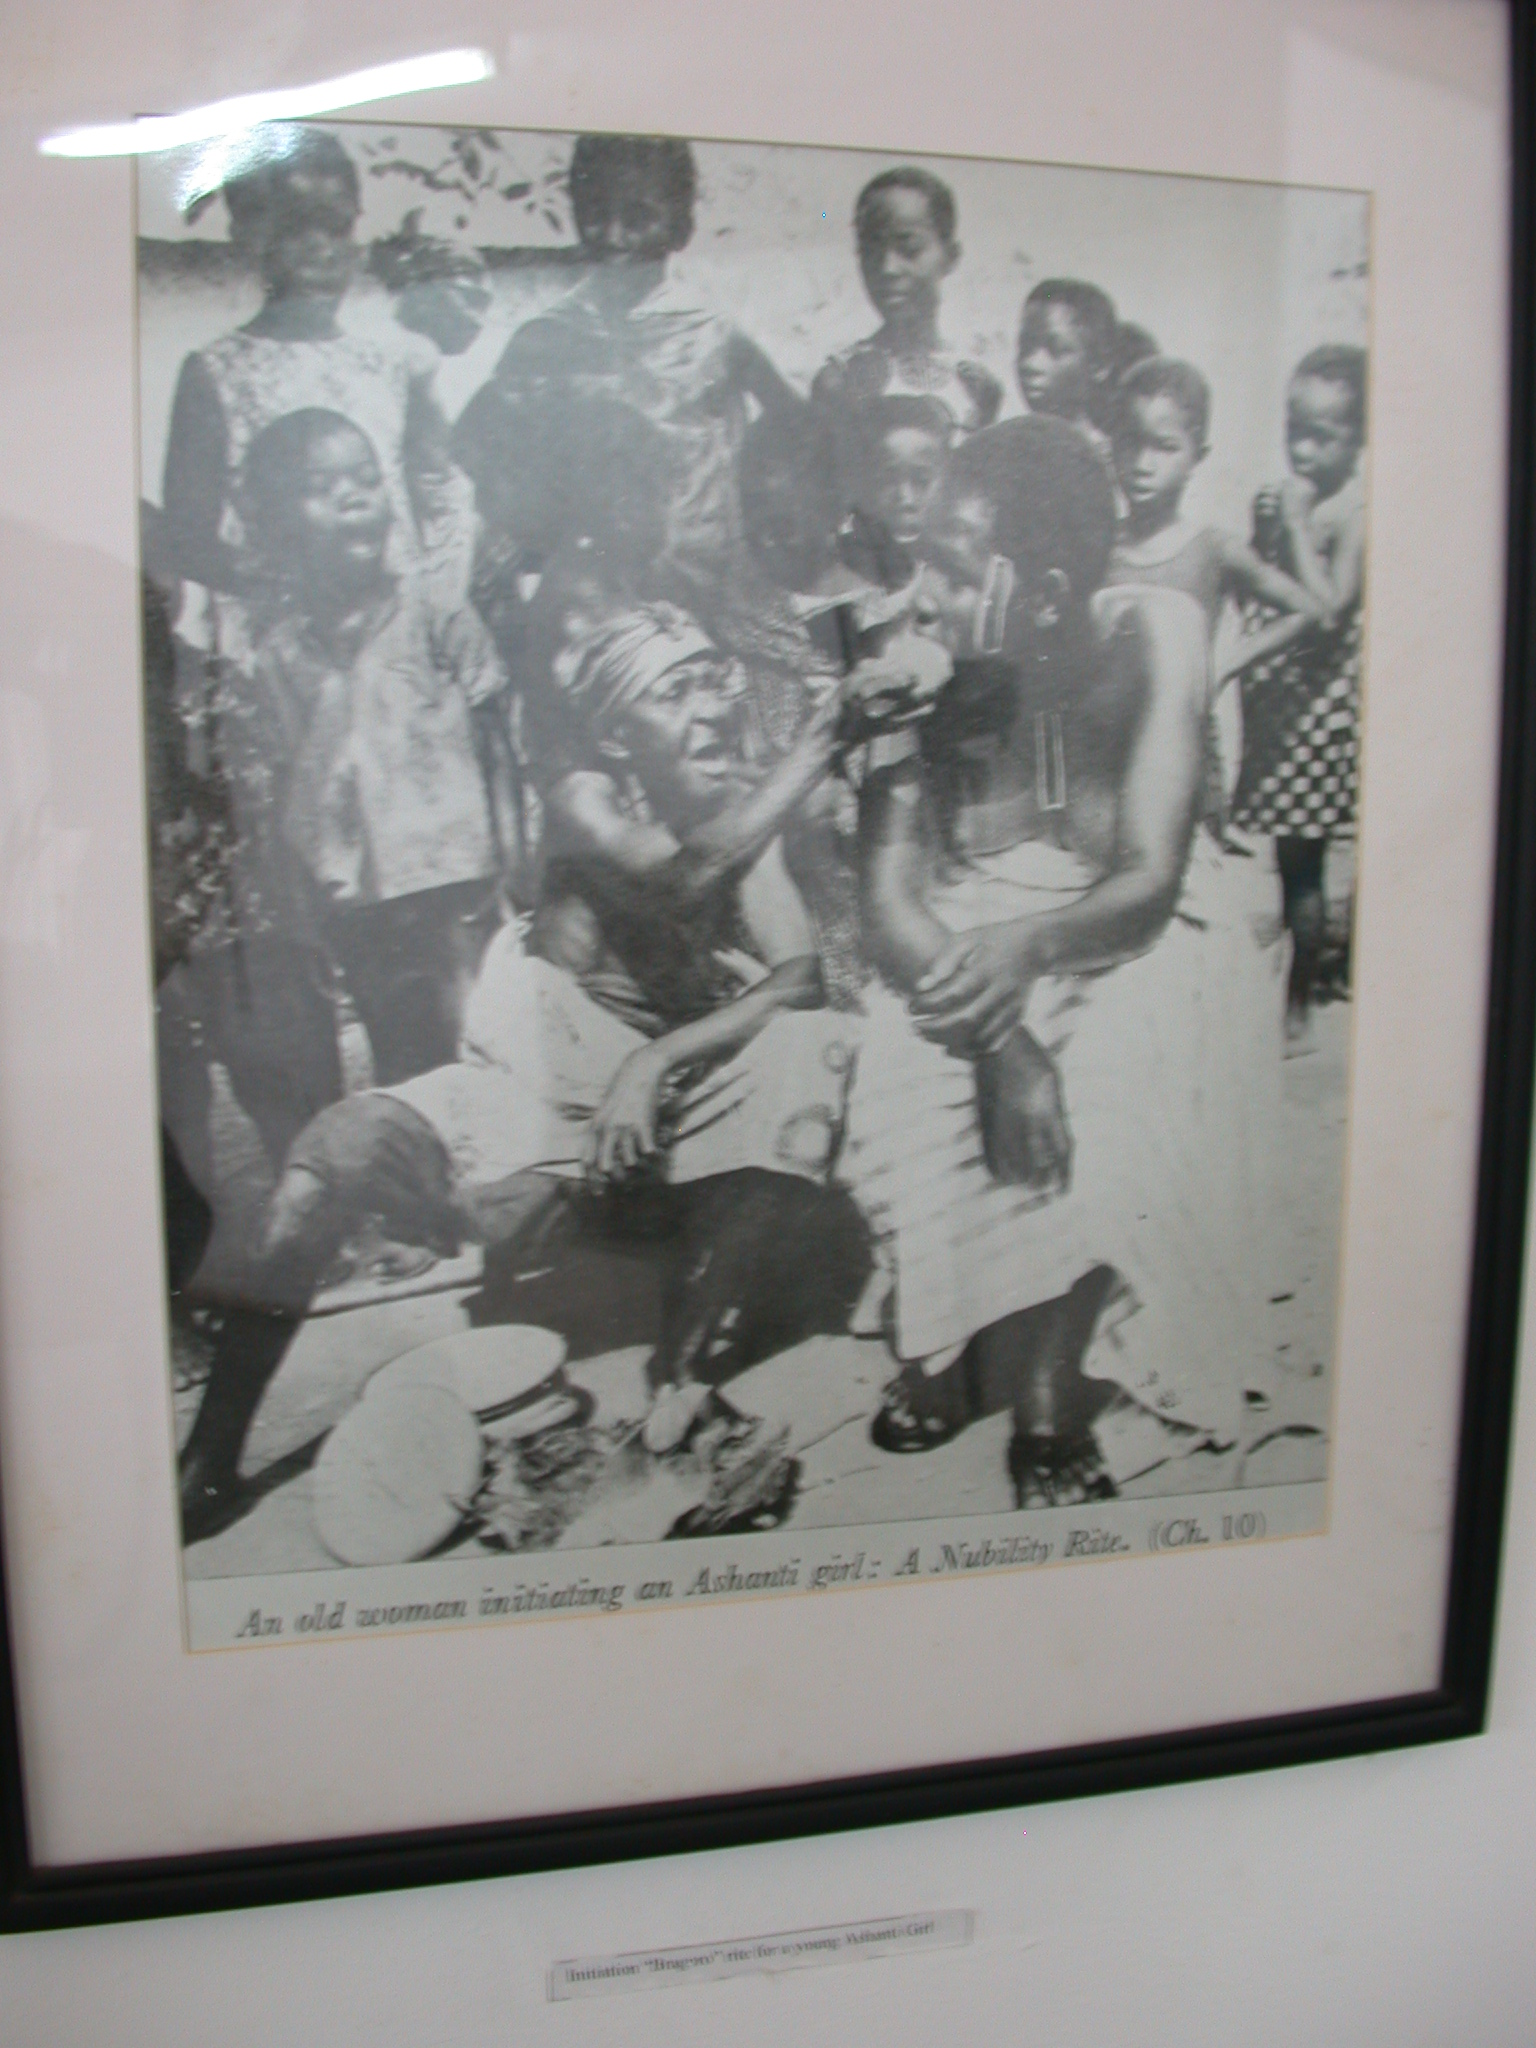 Picture of an Old Woman Initiating an Ashanti / Asante Girl, National Museum, Accra, Ghana